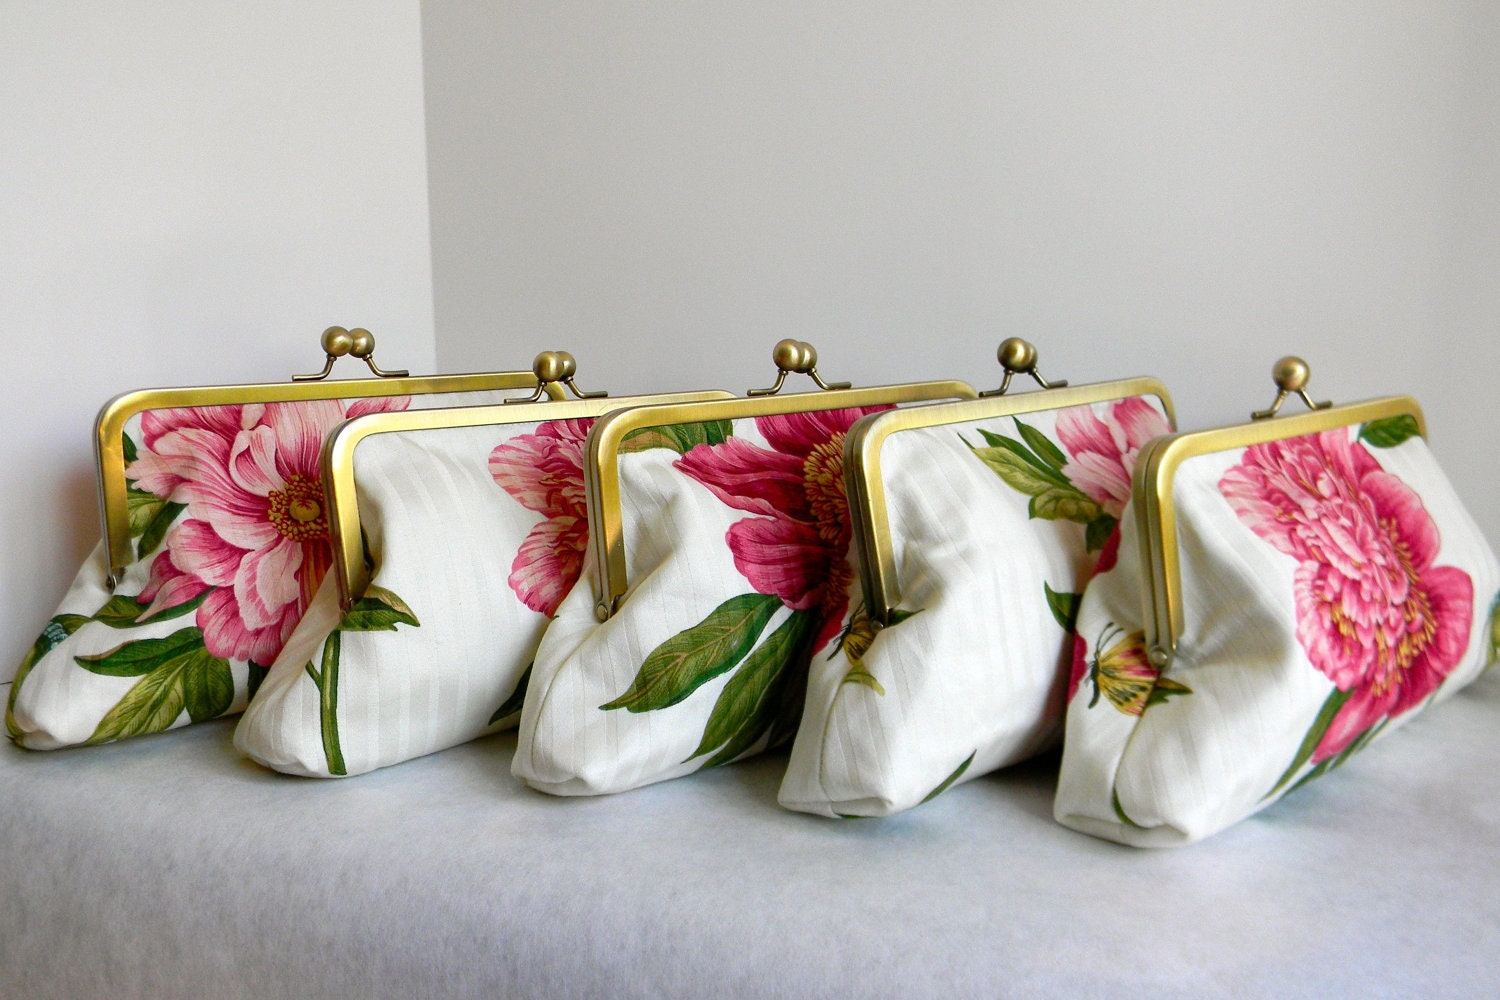 Gorgeous pink peony flower clutch set of 5 pink floral wedding bridal party clutches small purse